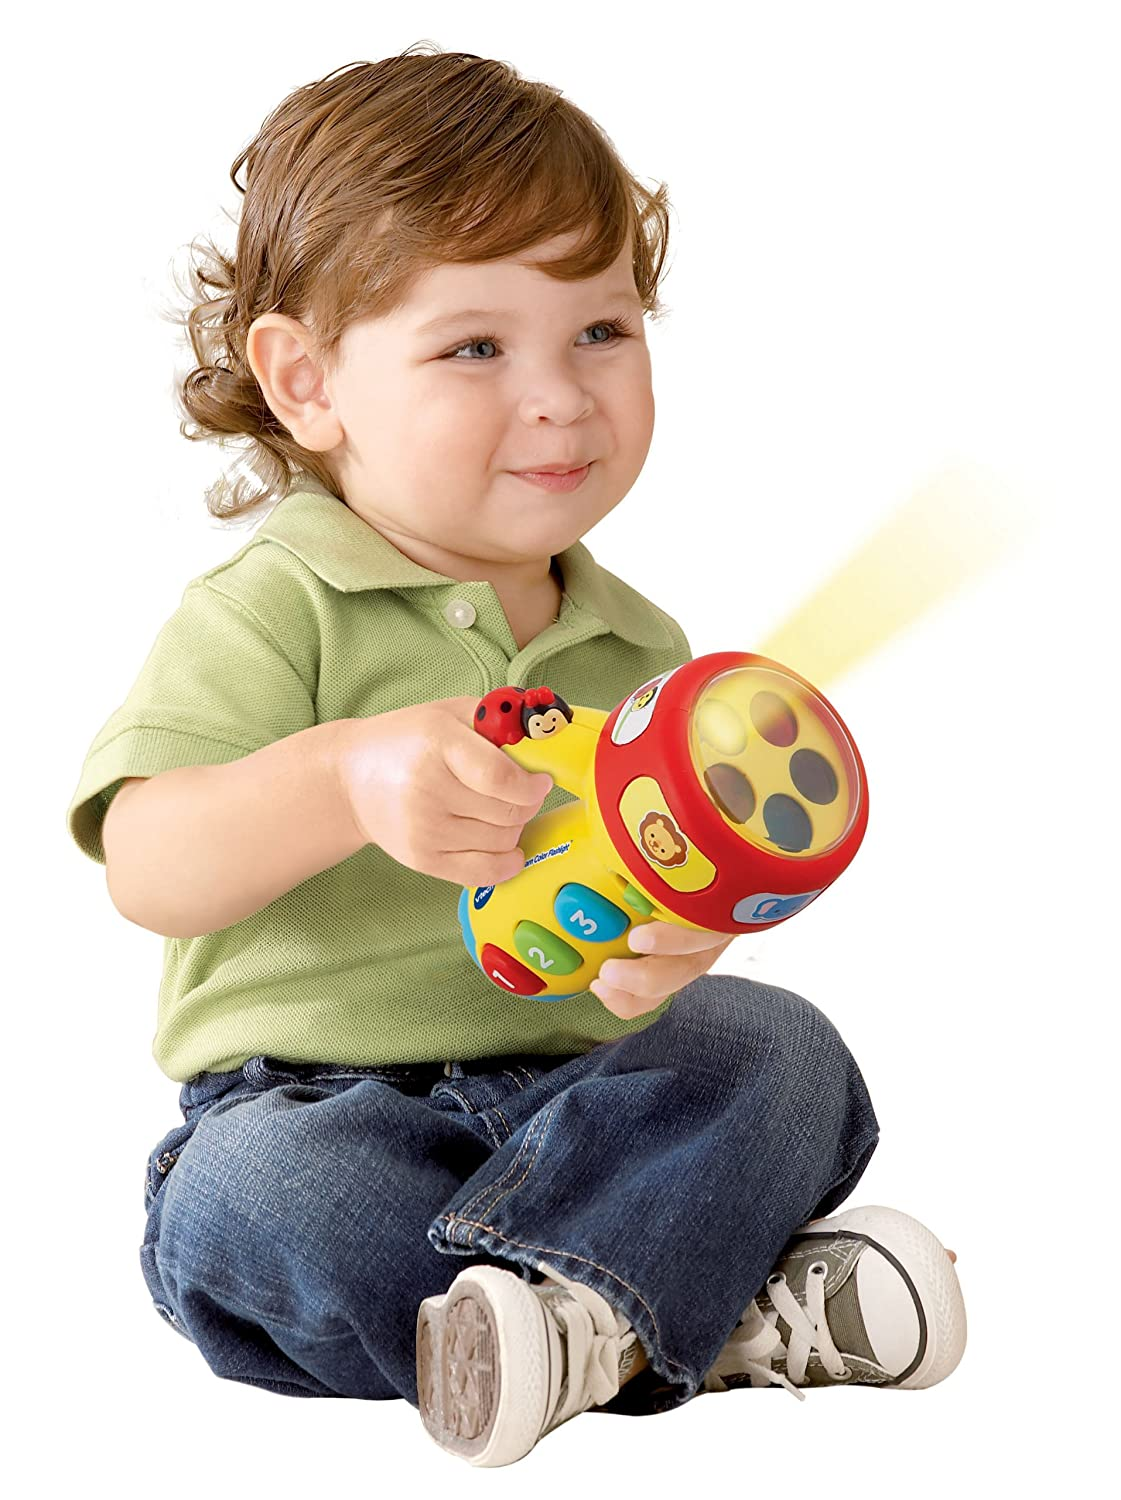 Toddler Educational Toys : Best educational learning toys for toddlers girls and boys